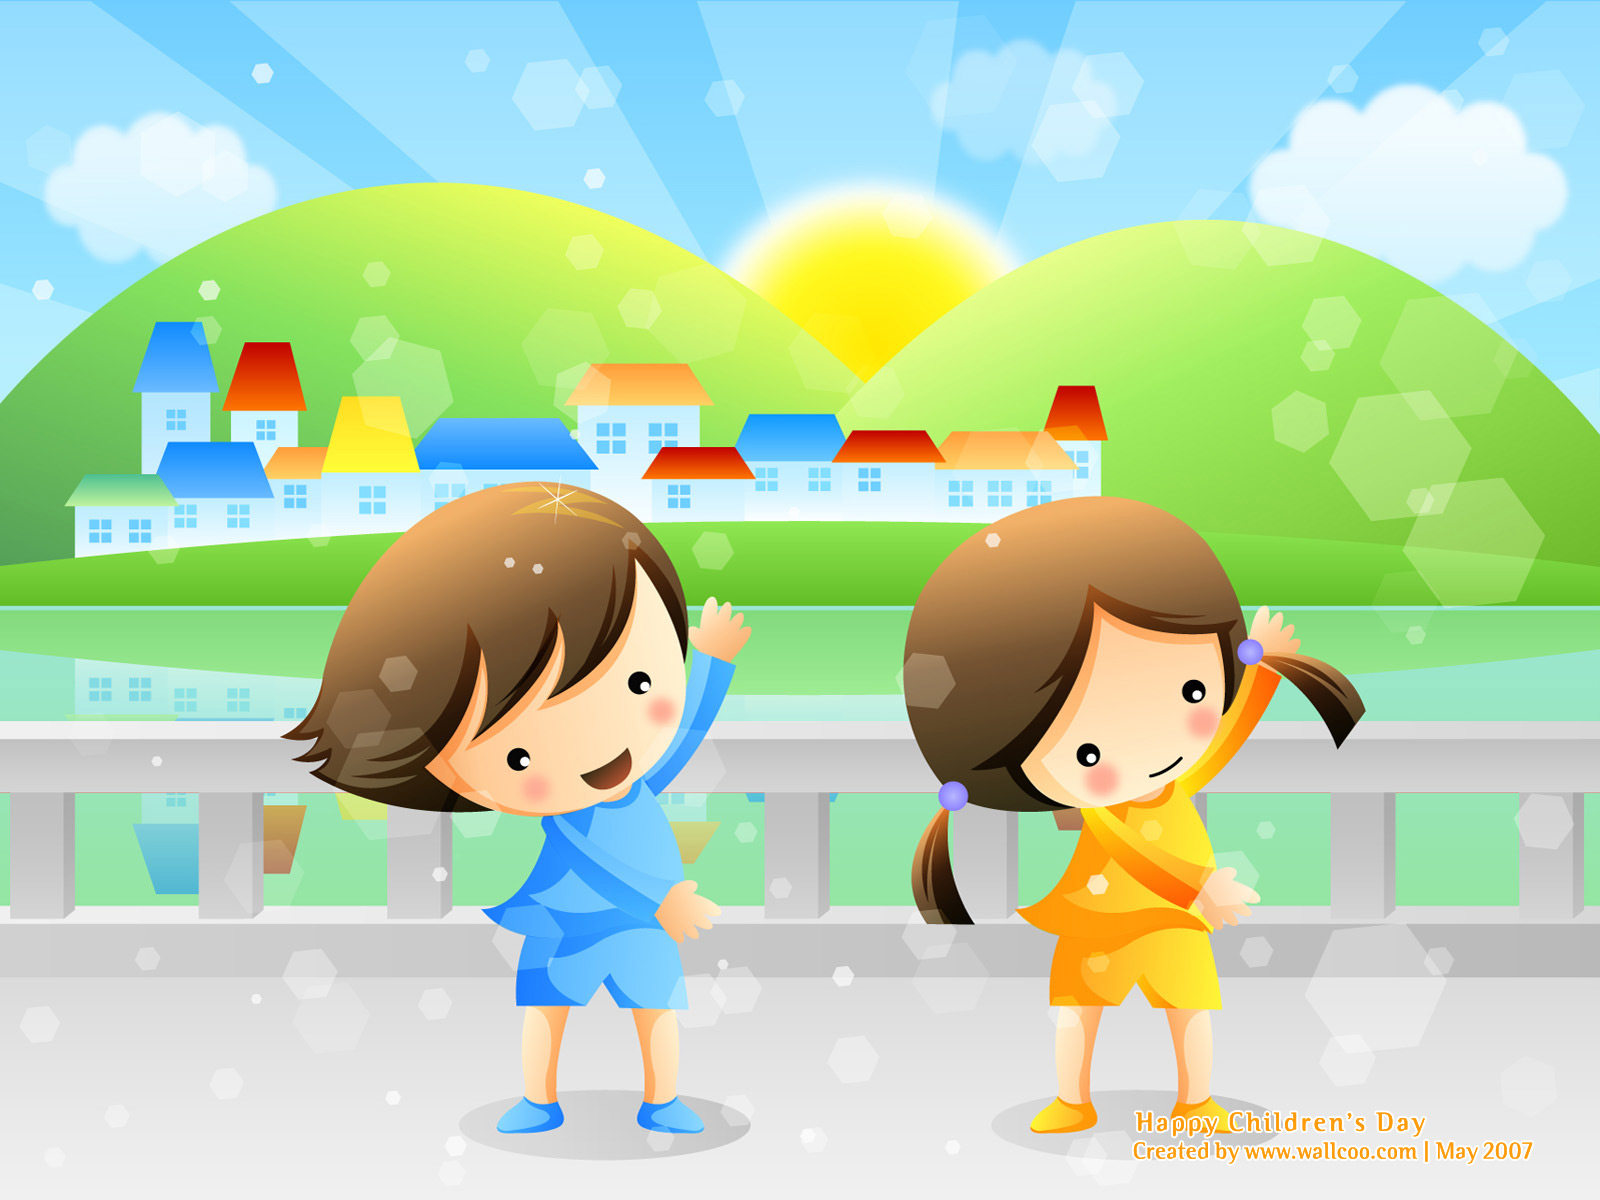 http://4.bp.blogspot.com/-I9K7j-MT_lk/TeX75HNqVpI/AAAAAAAAATQ/LfYvxaQRnkk/s1600/Children_Day_vector_wallpaper_0168013a.jpg